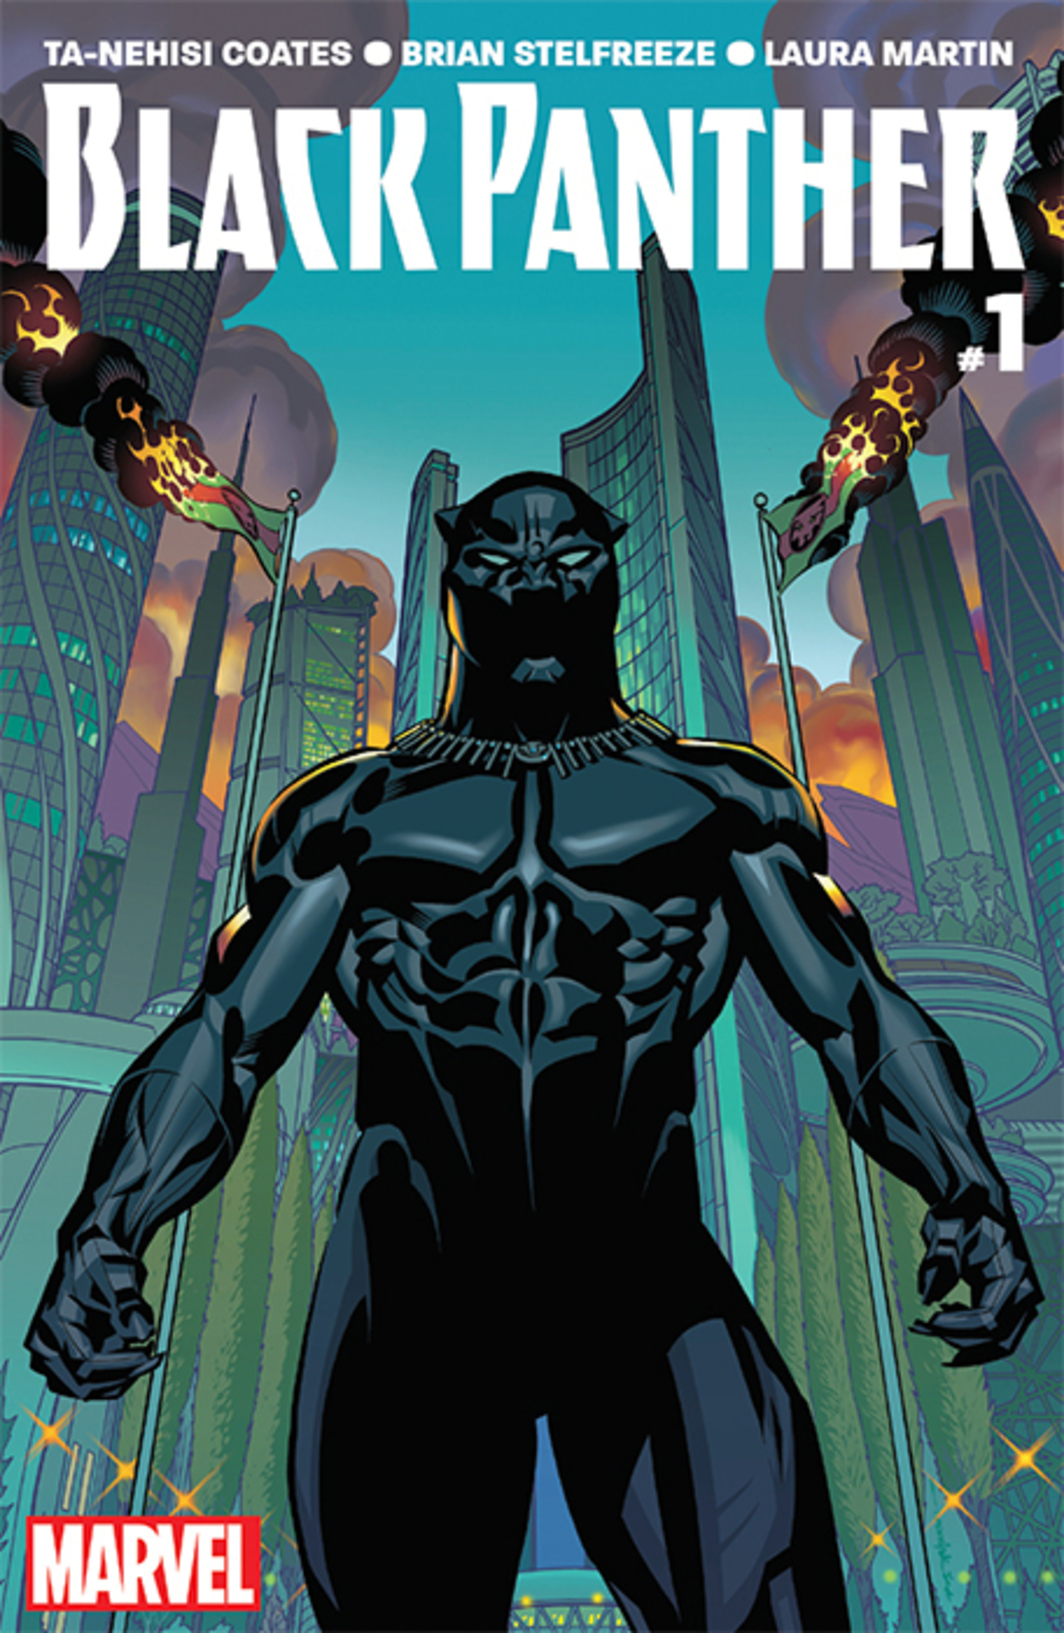 Cover of Ta-Nehisi Coates and Brian Stelfreeze's Black Panther, no. 1 (Marvel, June 2016).